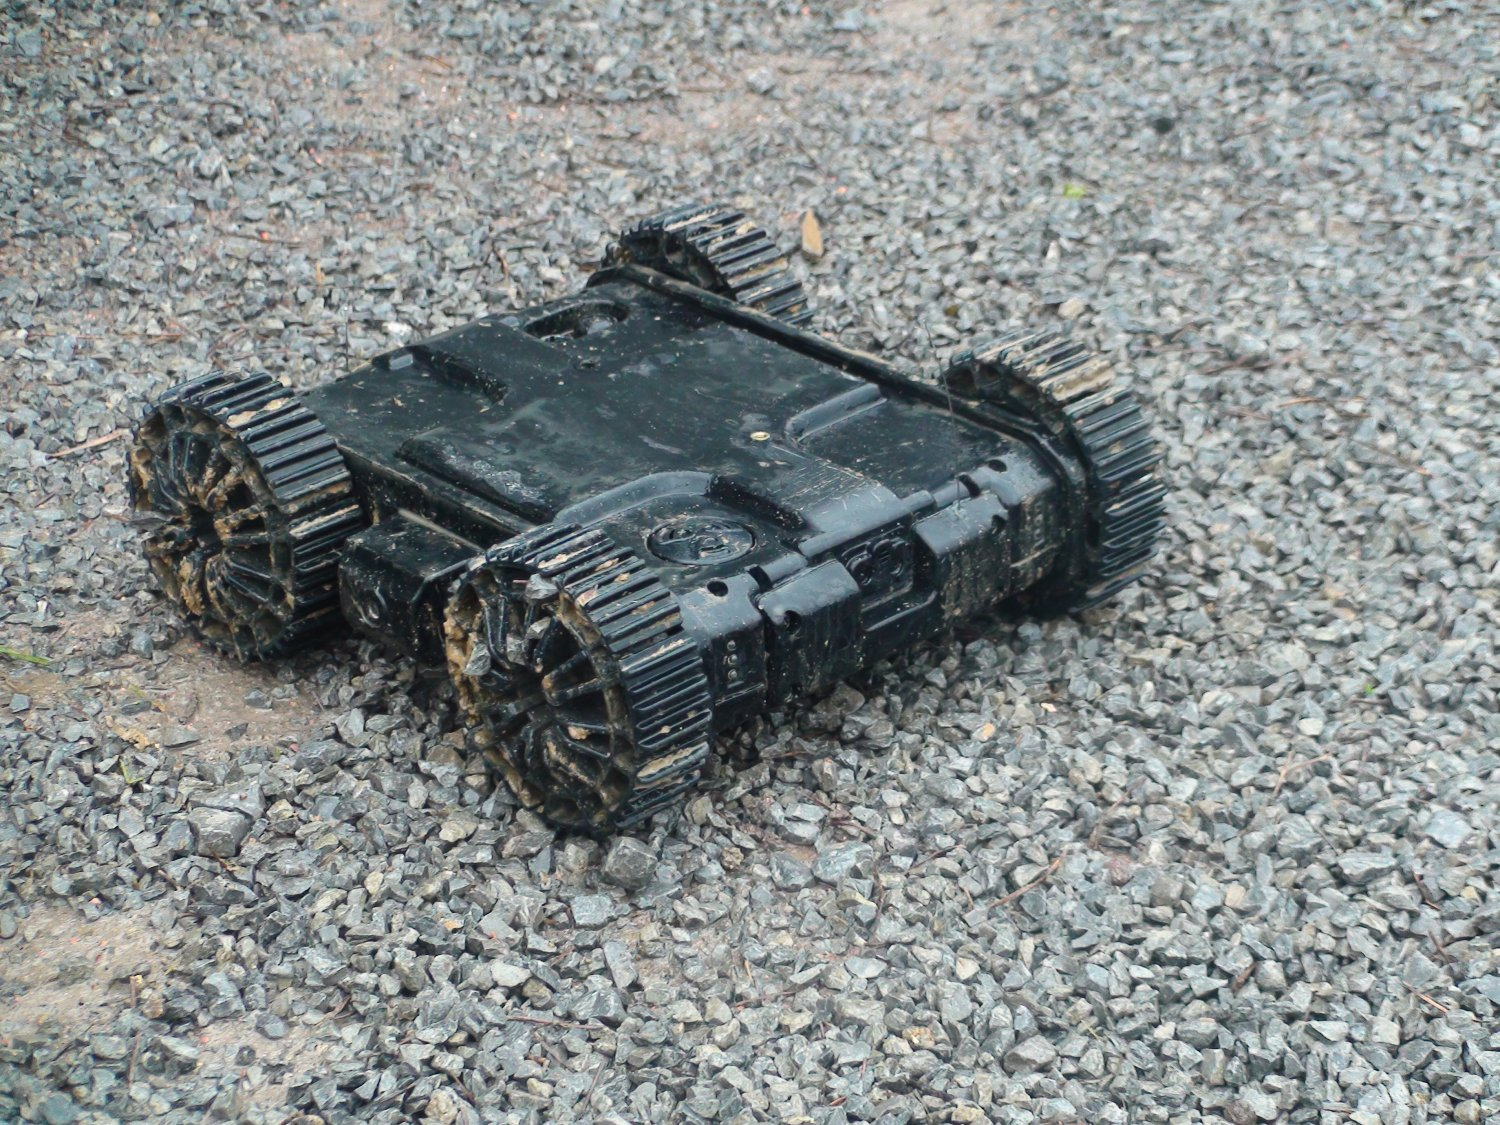 MacroUSA Armadillo V2 Throwable MUGV Micro Unmanned Ground Vehicle Tactical Robot Field Demo 3 <!  :en  >MacroUSA Armadillo V2 Throwable Micro Unmanned Ground Vehicle (MUGV) Tactical Robot Wins Innovation Award at  Military European Land Robot (M ELROB) 2010 Trial/Competition <!  :  >